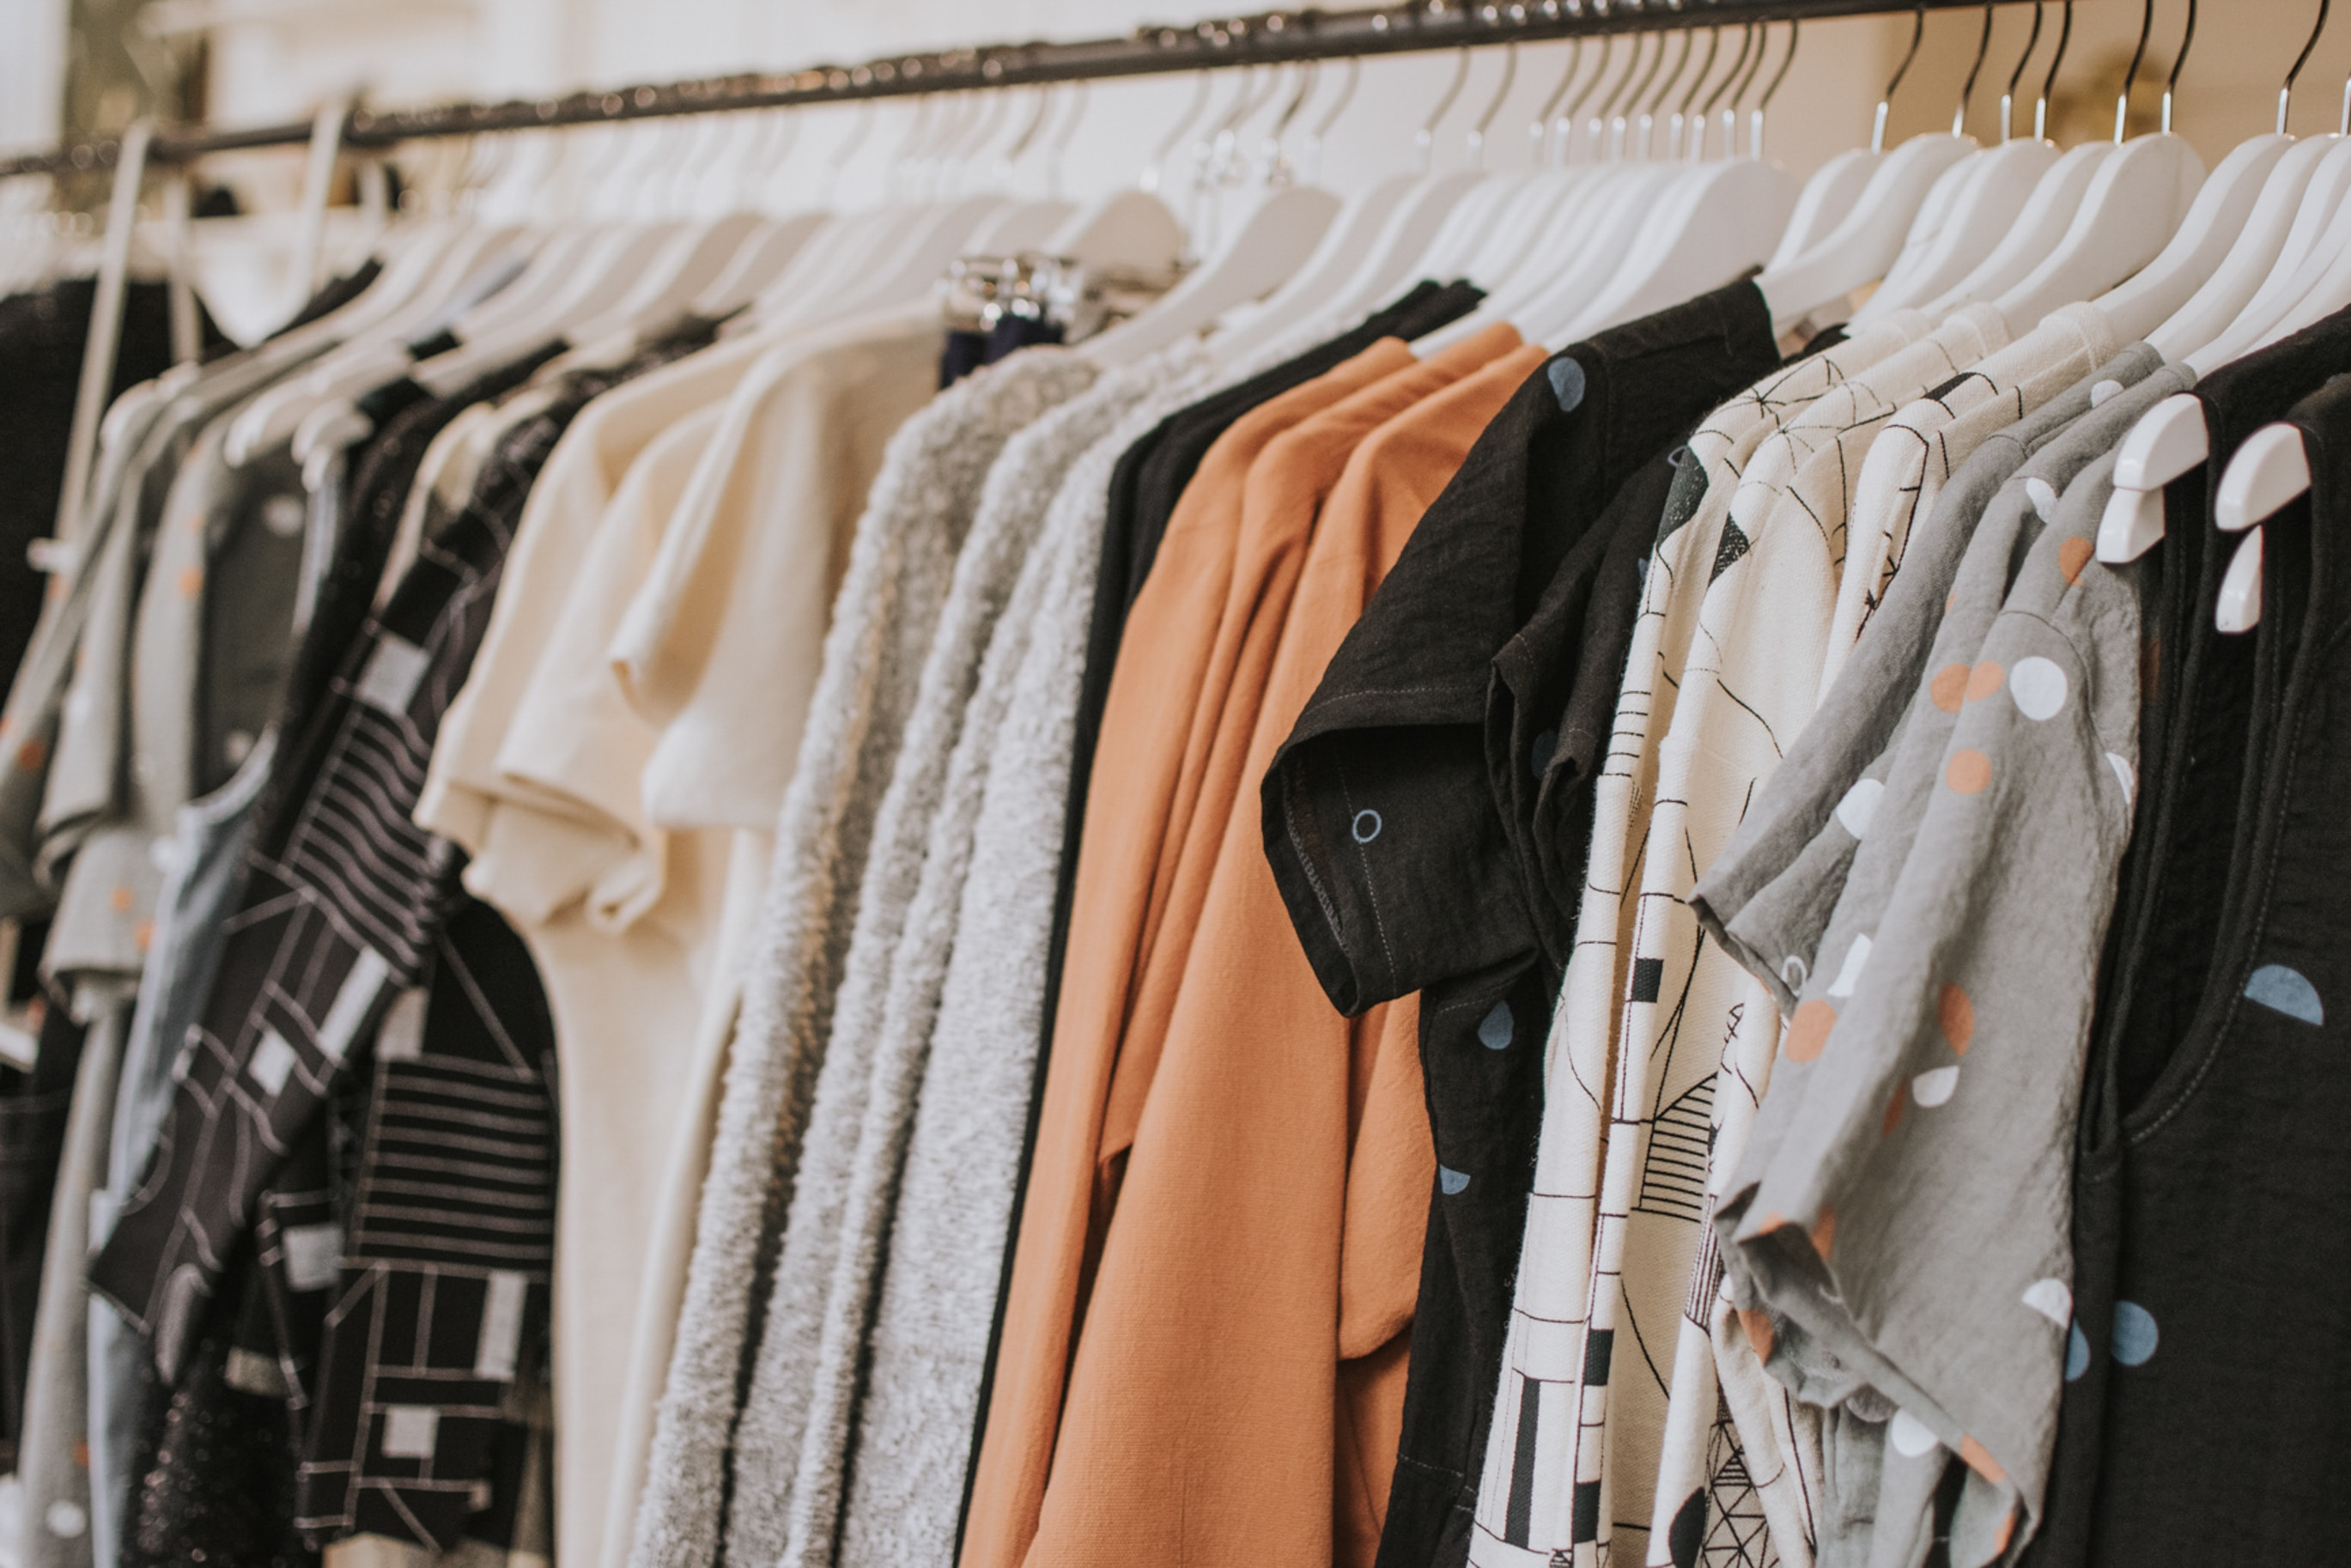 Time to slow down fast fashion for the sake of the planet and people